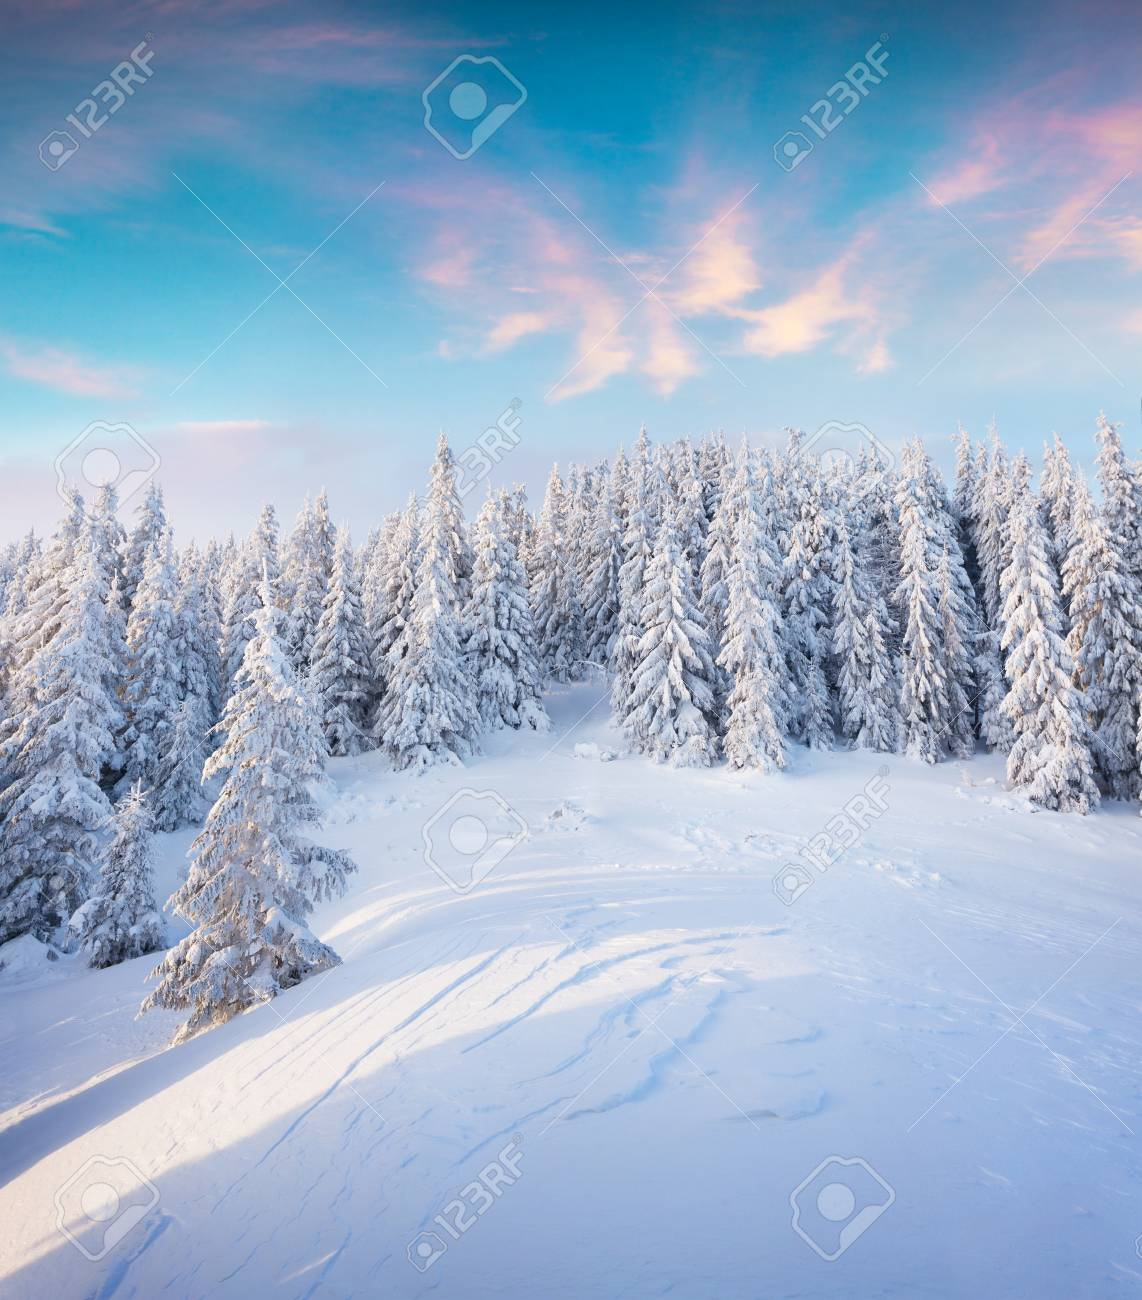 Beautiful winter sunrise in Carpathian mountains. Colorful outdoor scene, Happy New Year celebration concept. Artistic style post processed photo. - 89492834